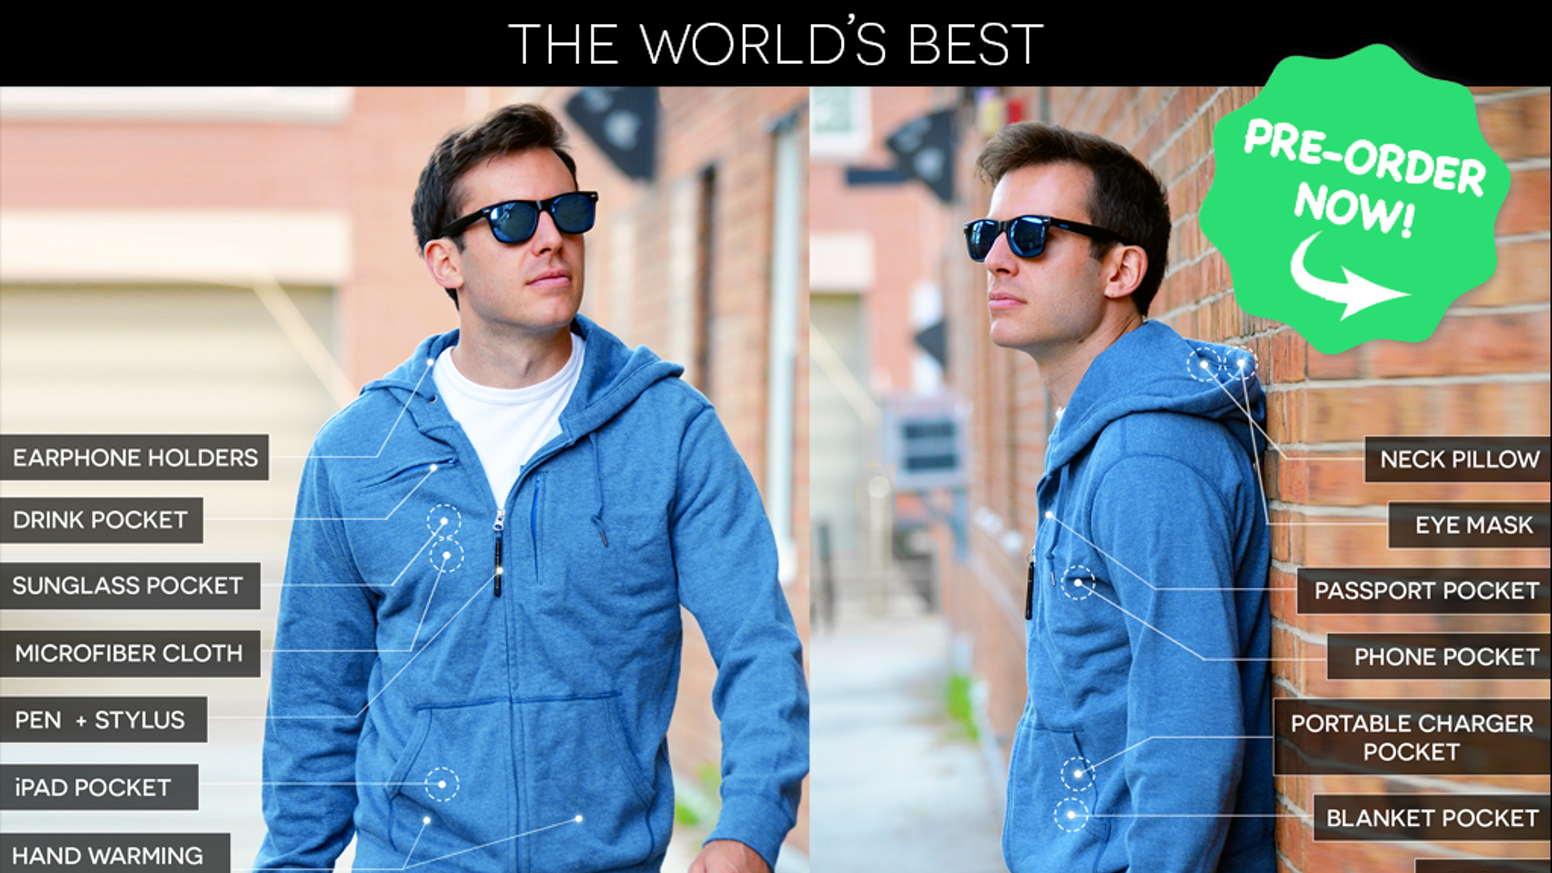 The World S Best Travel Jacket With 15 Features Baubax